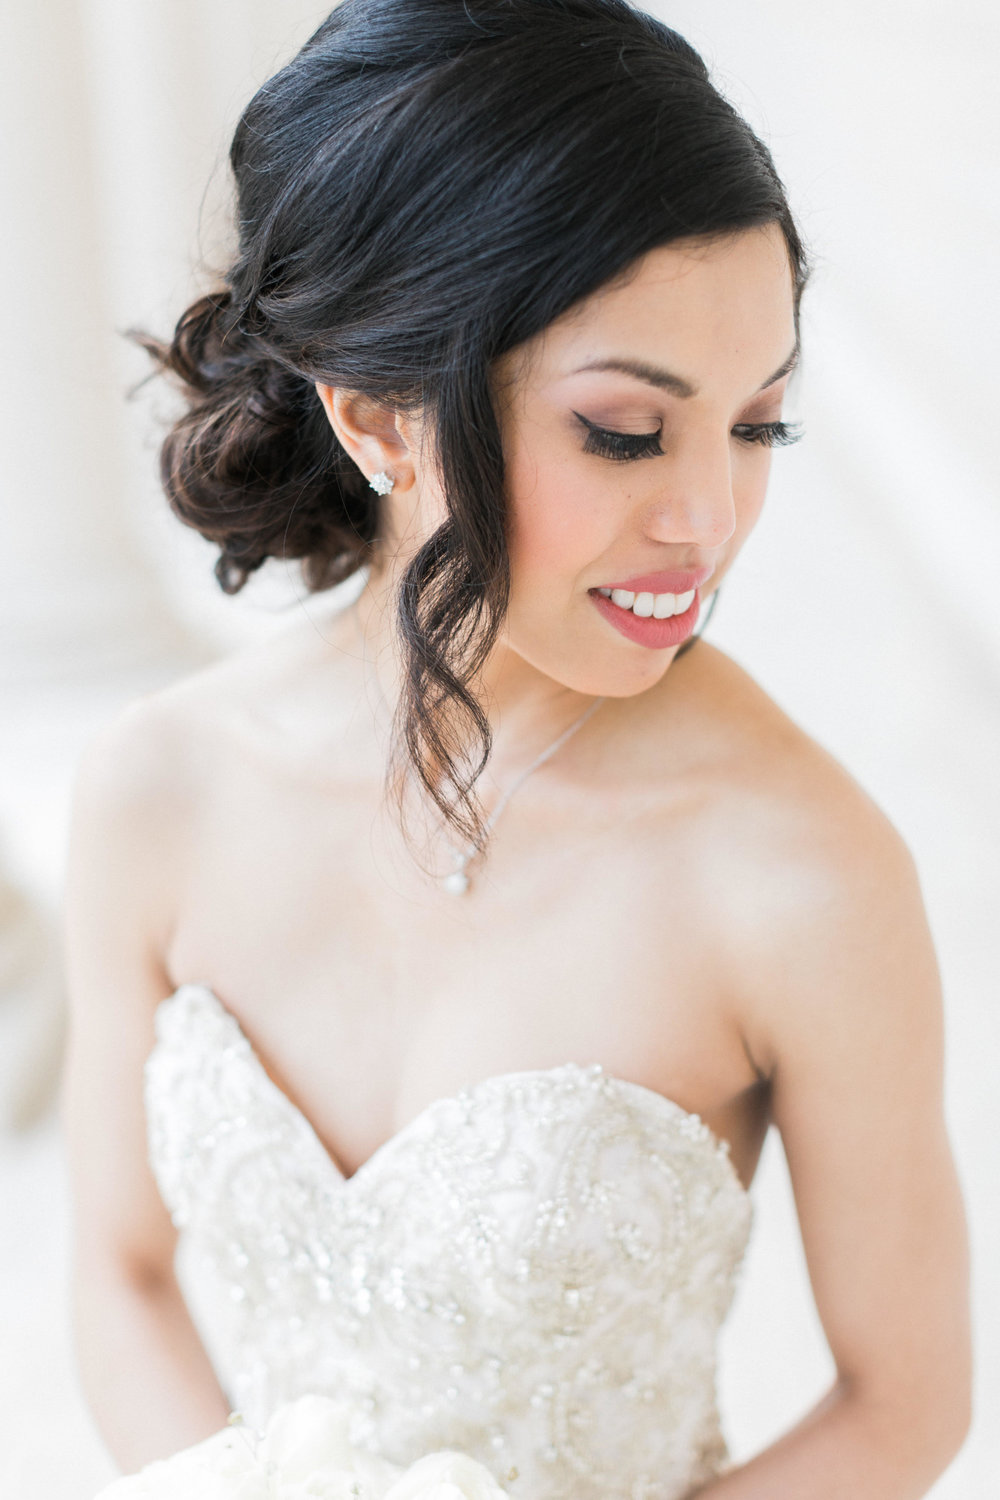 maria-lee-makeup-hair-wedding-sf_karen.jpg